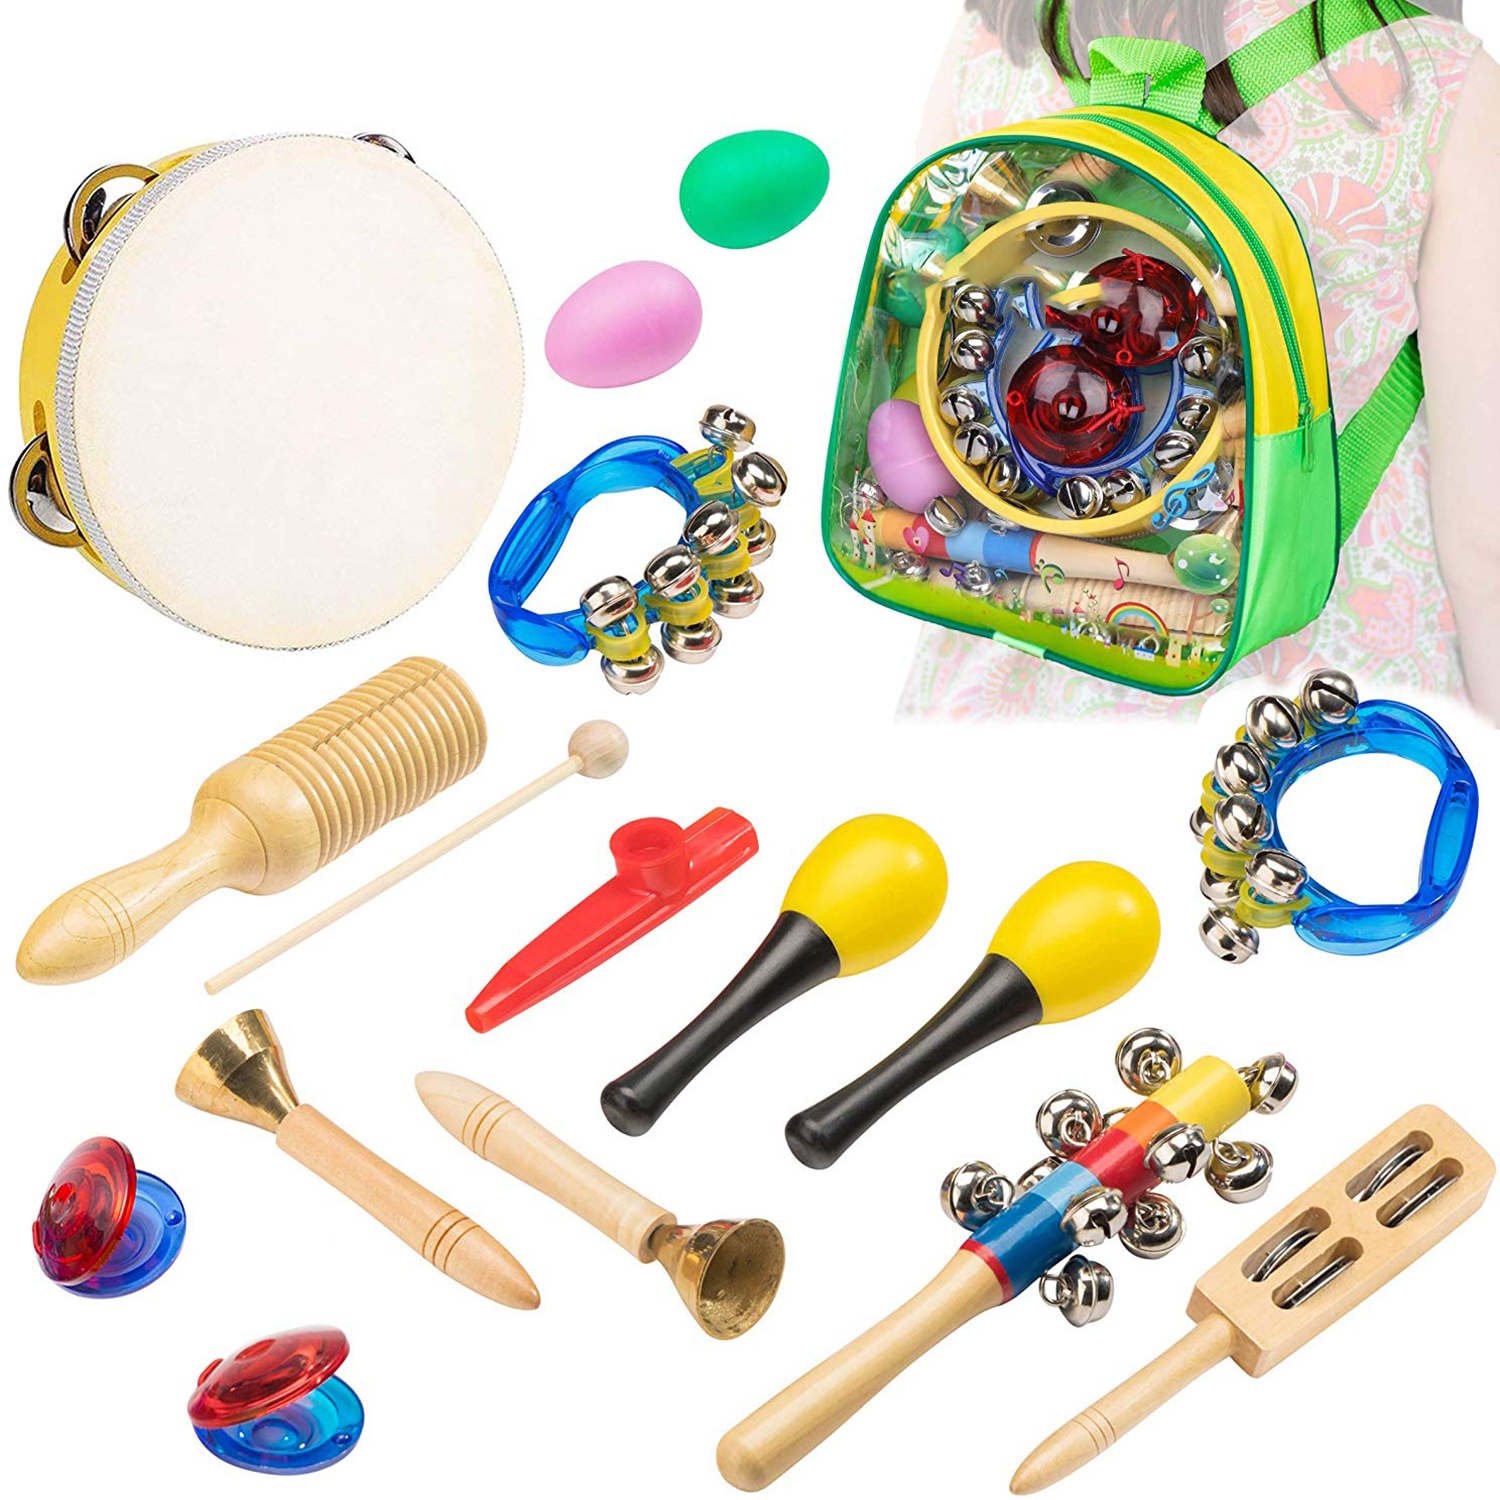 HOT-Musical Instrument Orff for Kids - 15 pcs Percussion Set for Toddlers Preschool Educational Learning Musical Toys Includin